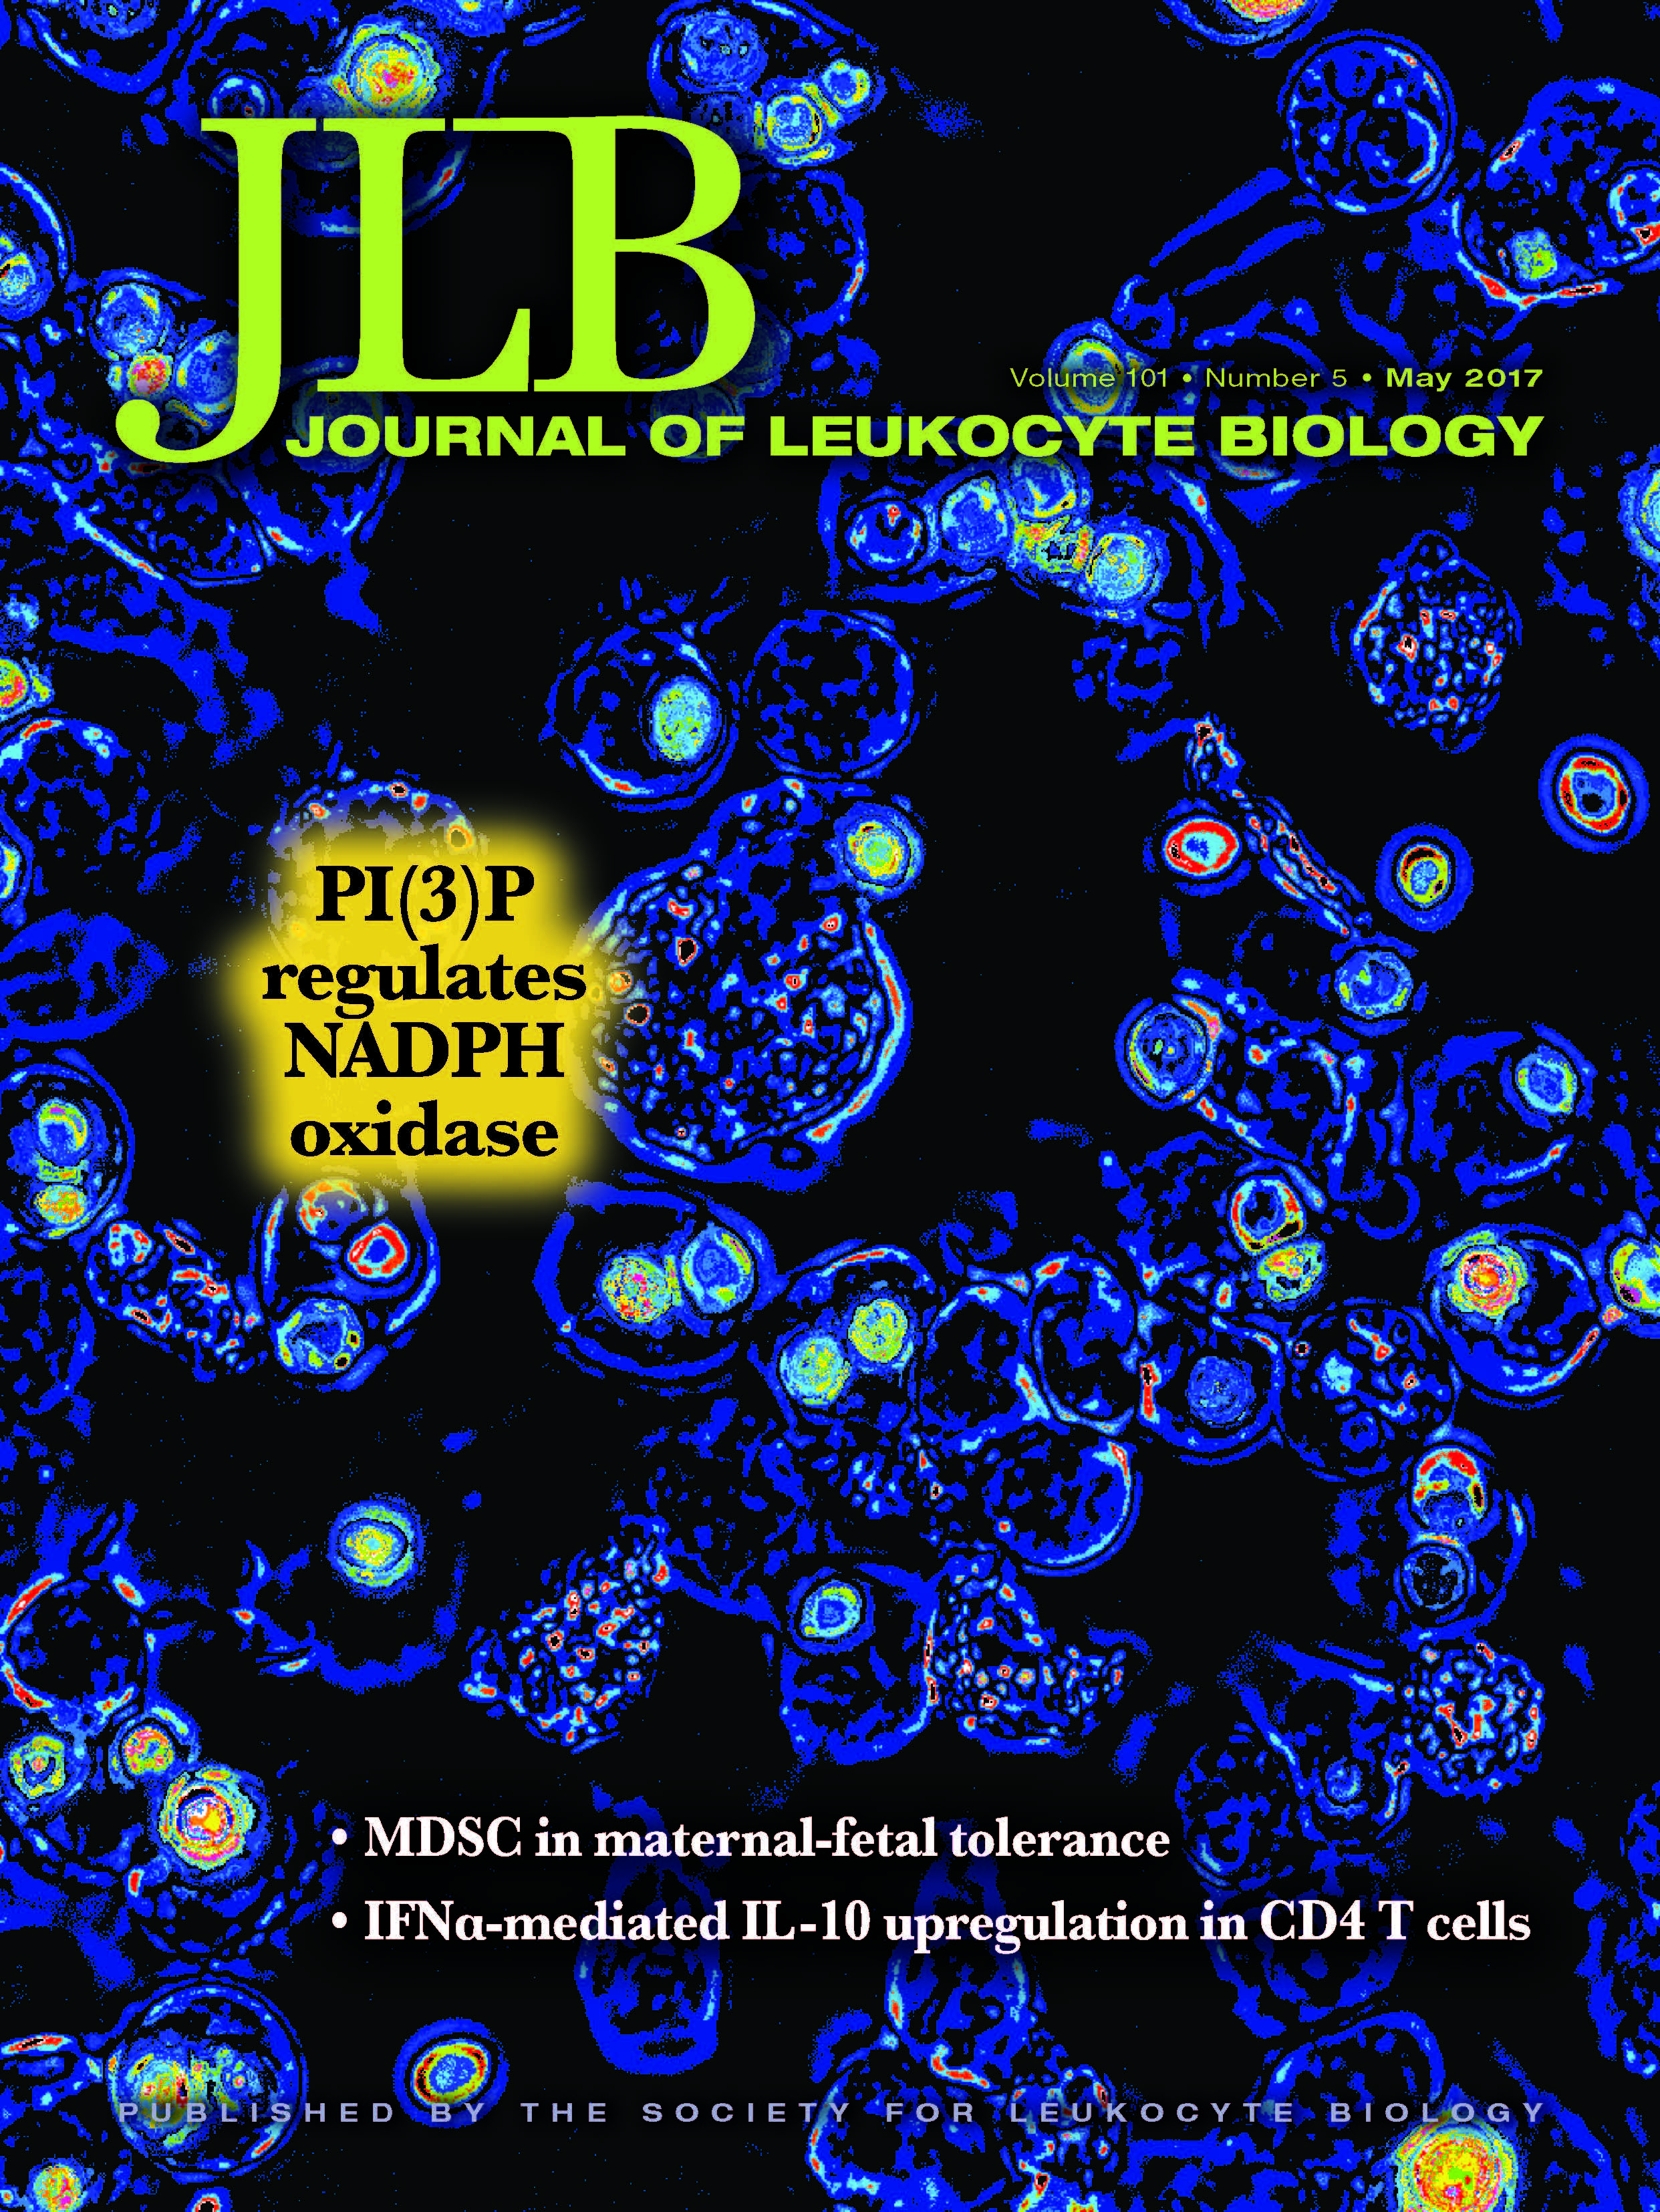 Rosenberg Lab article featured on JLB cover